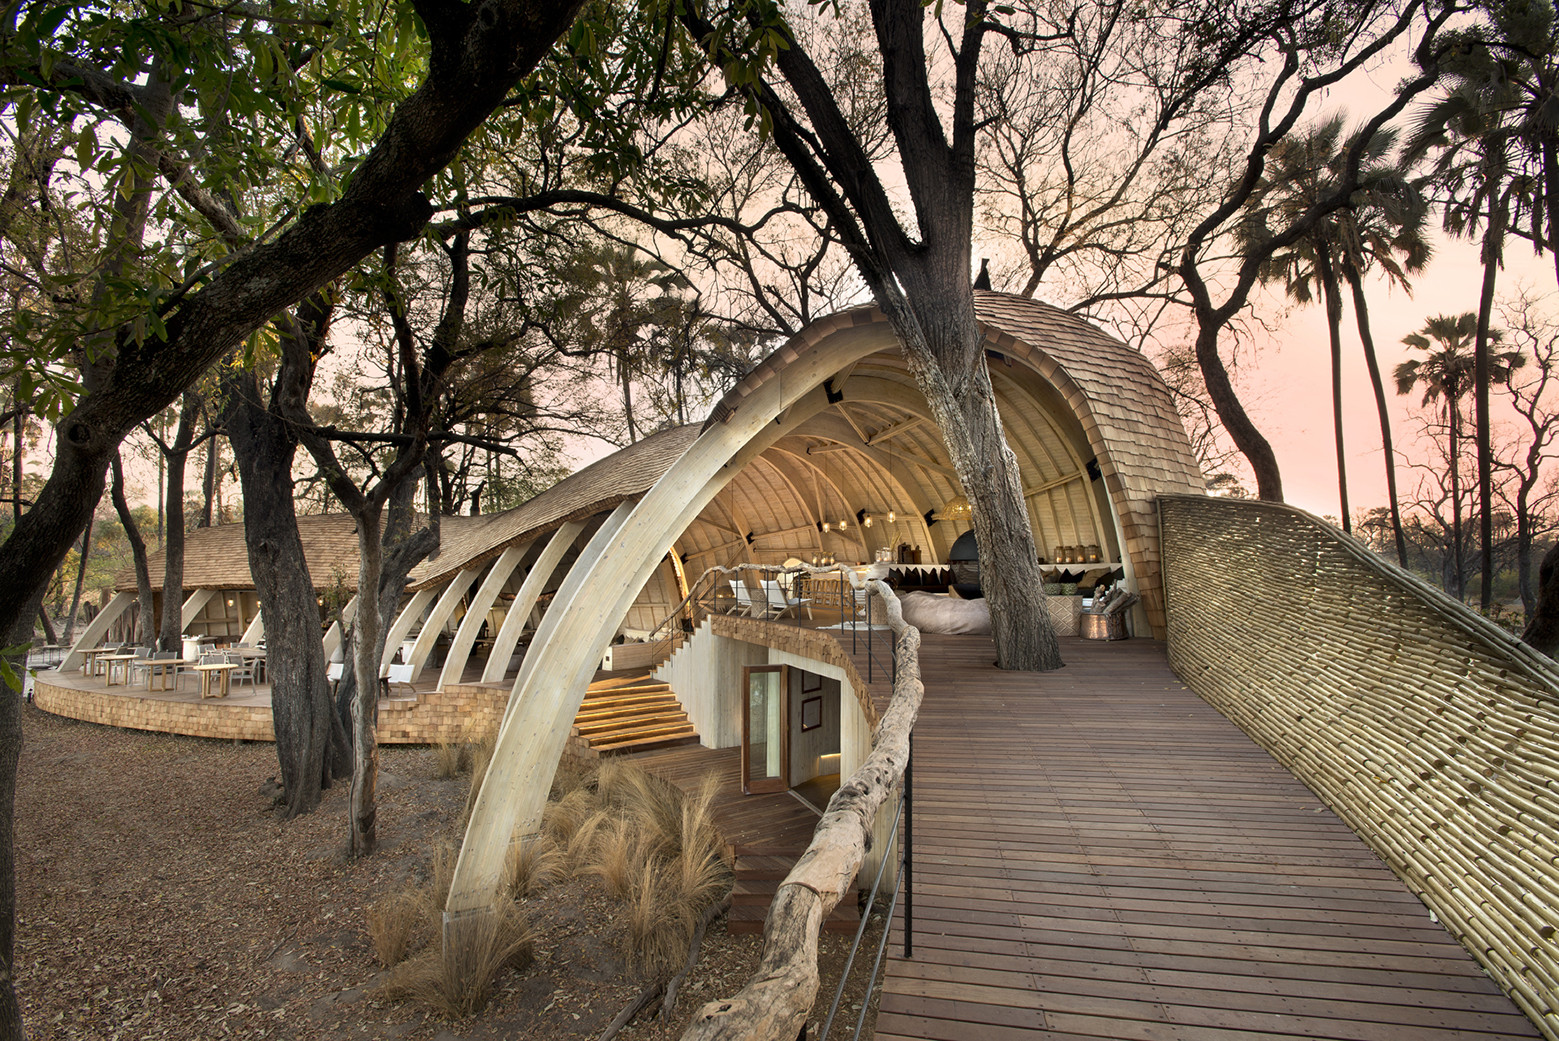 Lodge Sandibe en Okavango / Nicholas Plewman Architects in Association with Michaelis Boyd Associates, © Dook